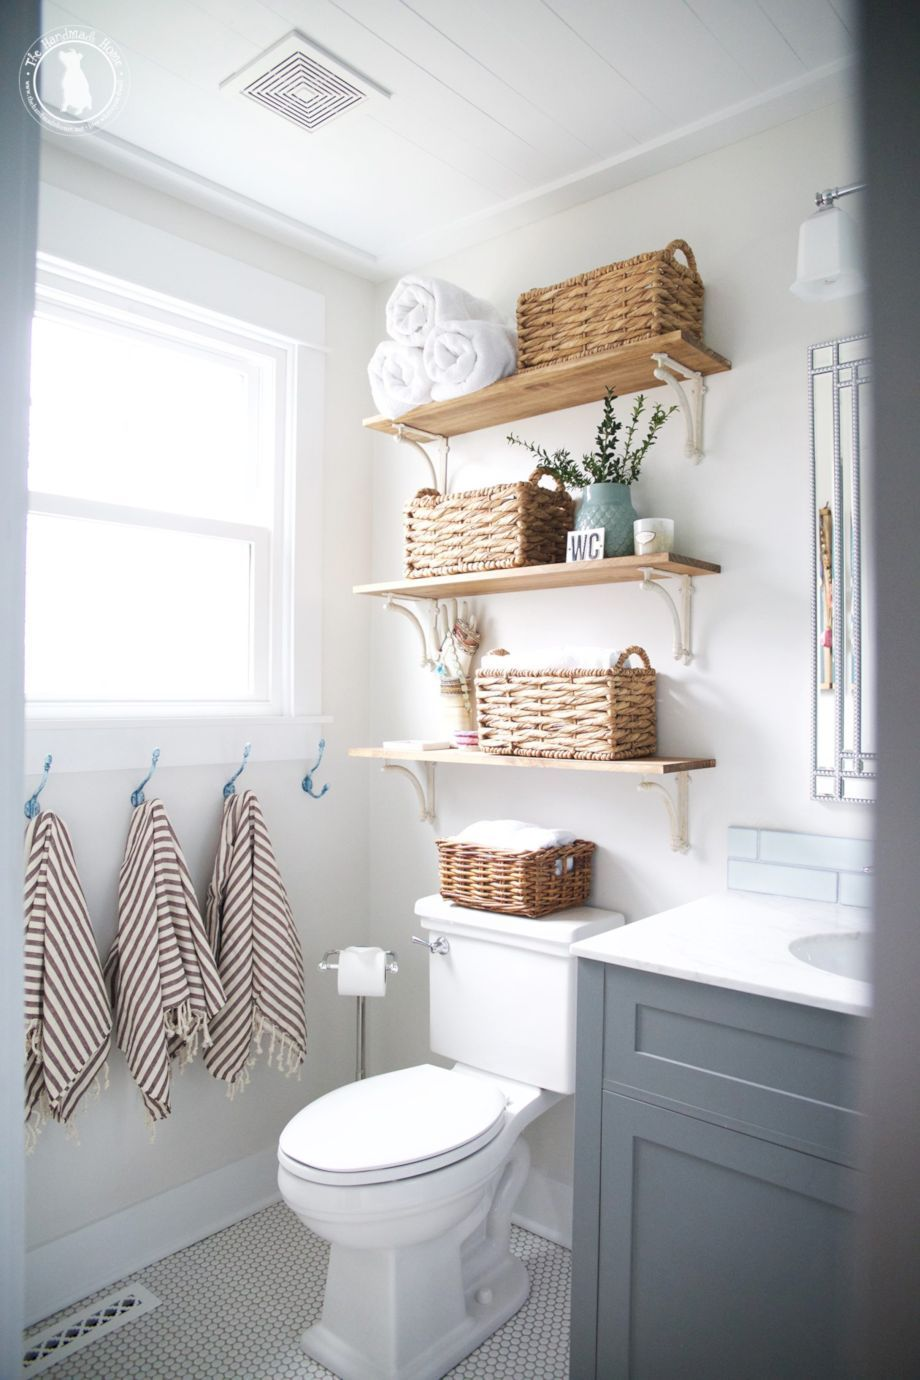 Charmant 69 Efficient Small Bathroom Storage Organization Ideas